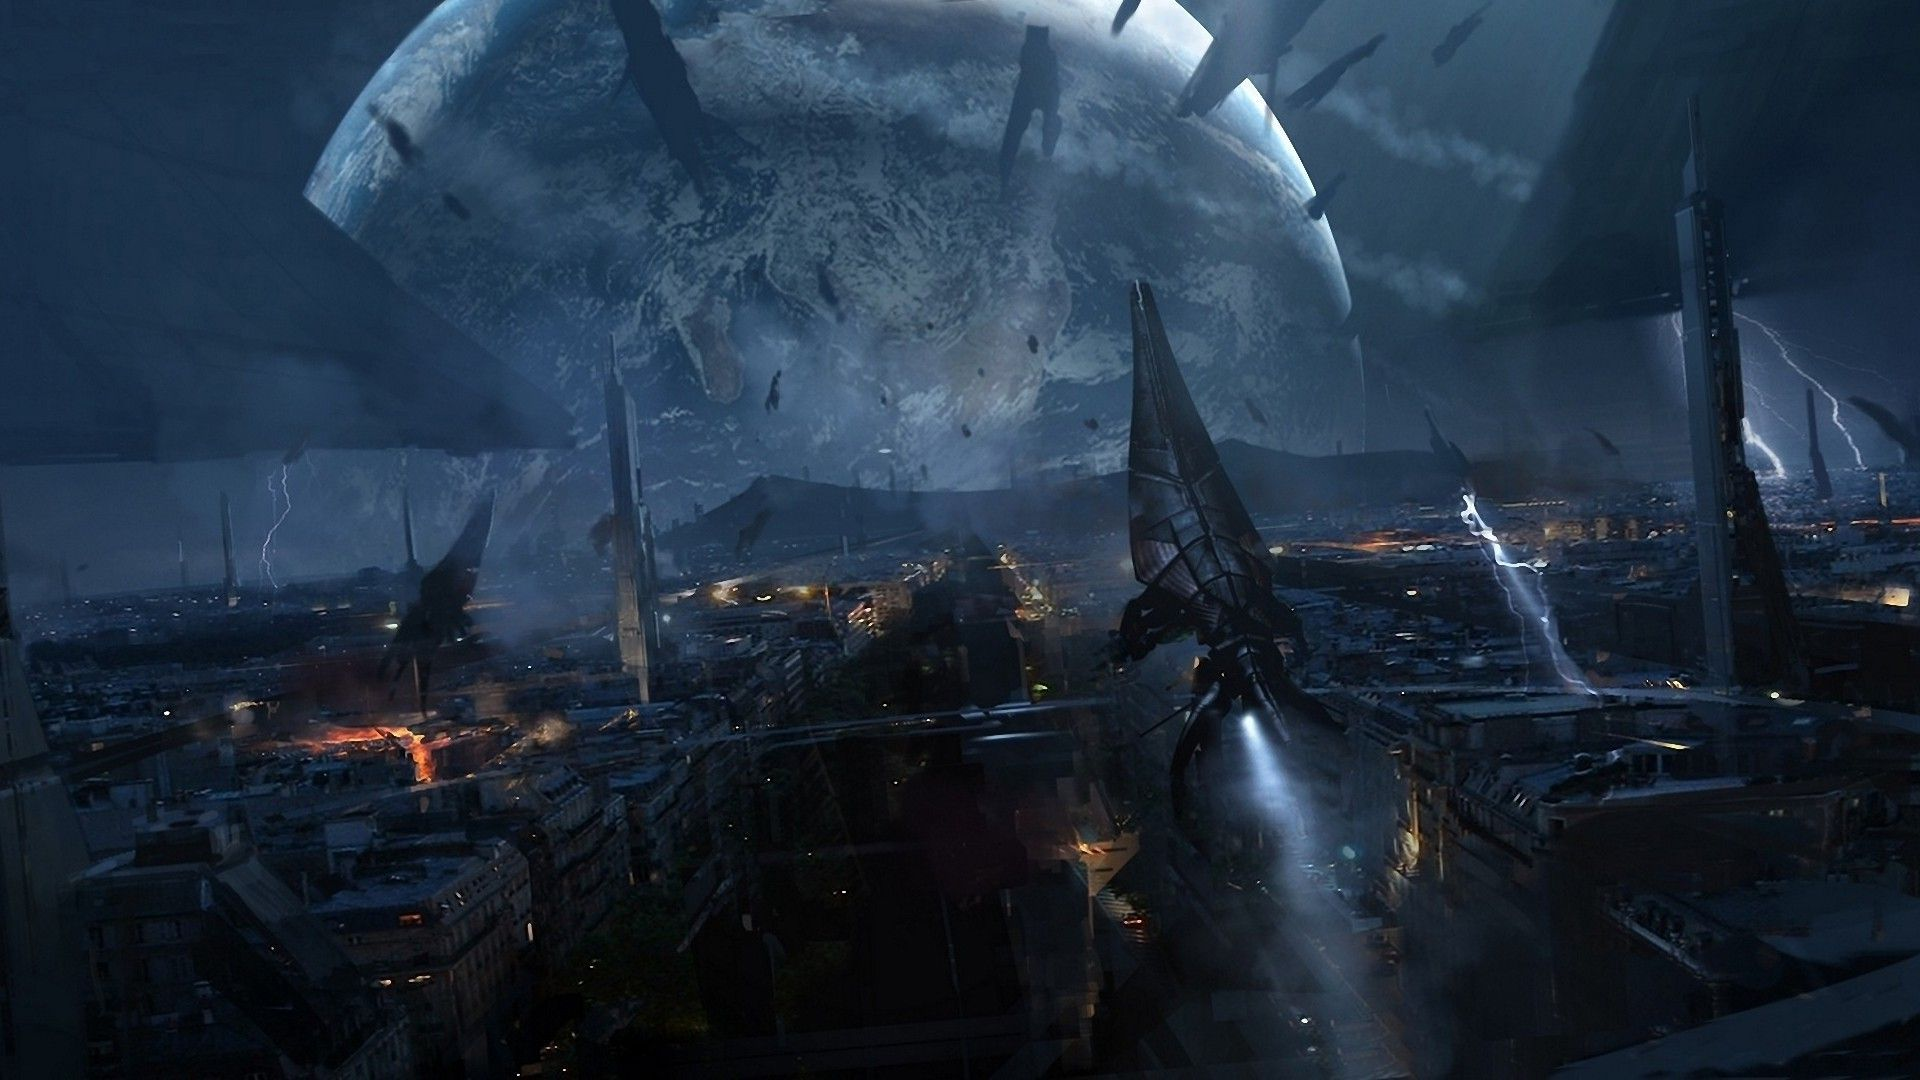 Free Download Mass Effect Wallpaper 16604 1920x1080 For Your